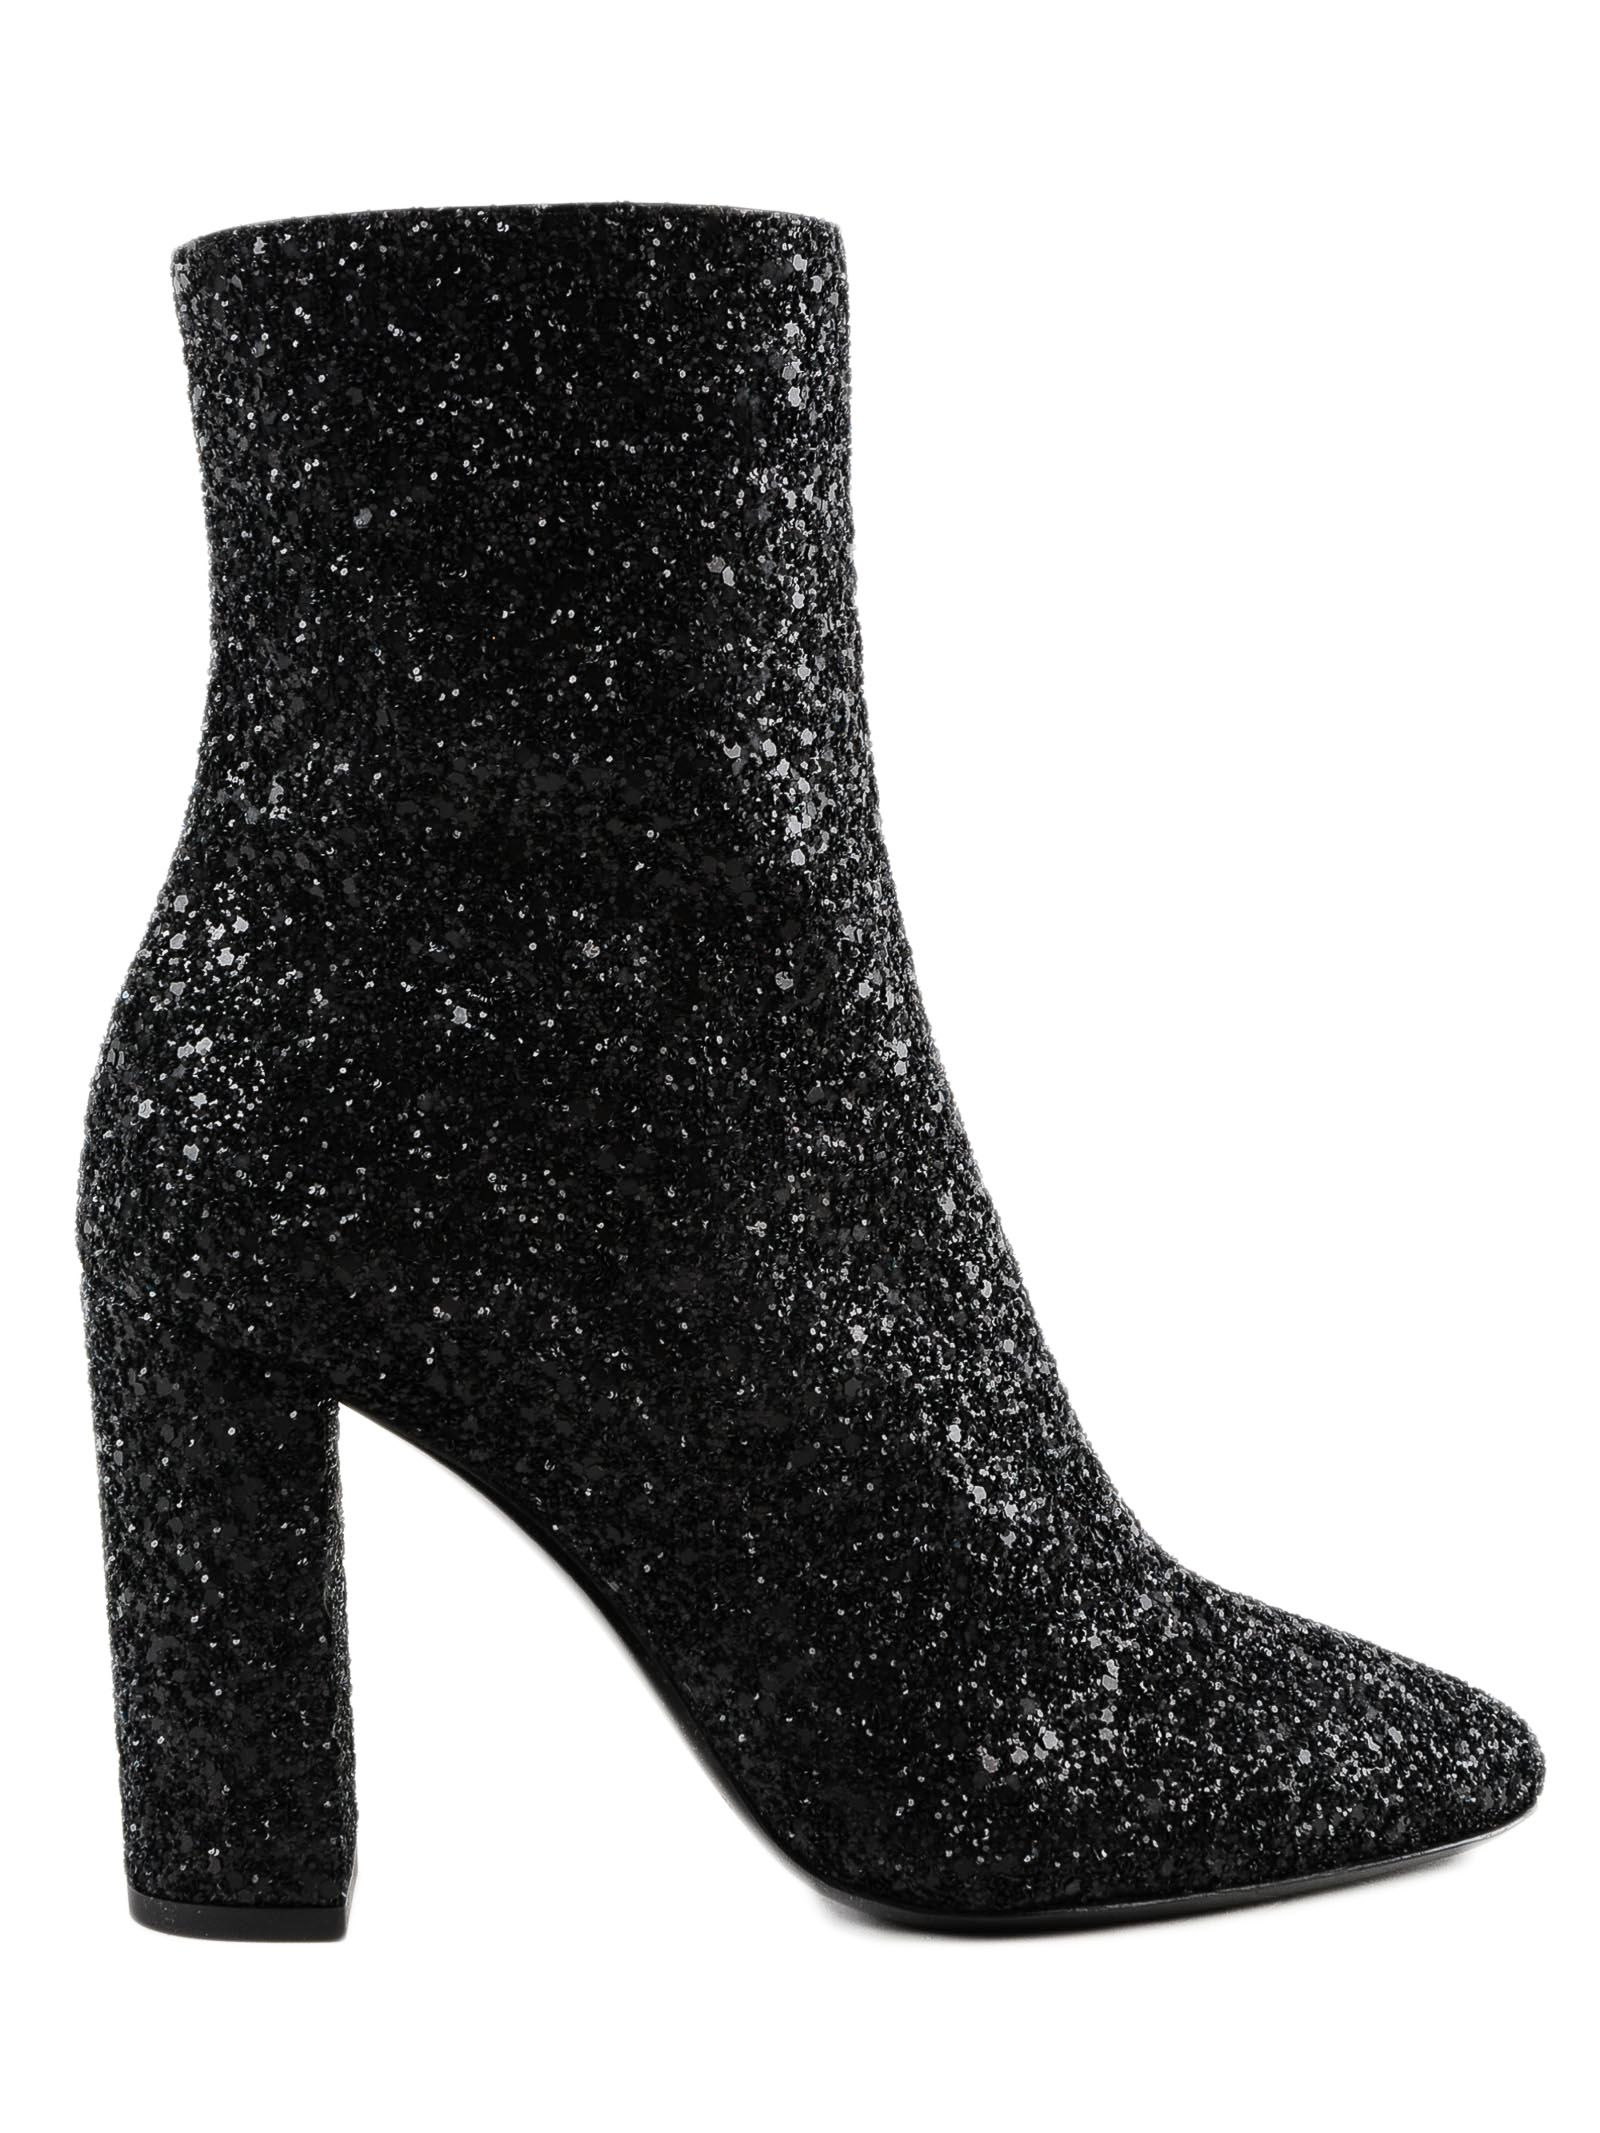 Lou 95 Ankle Boots in Black